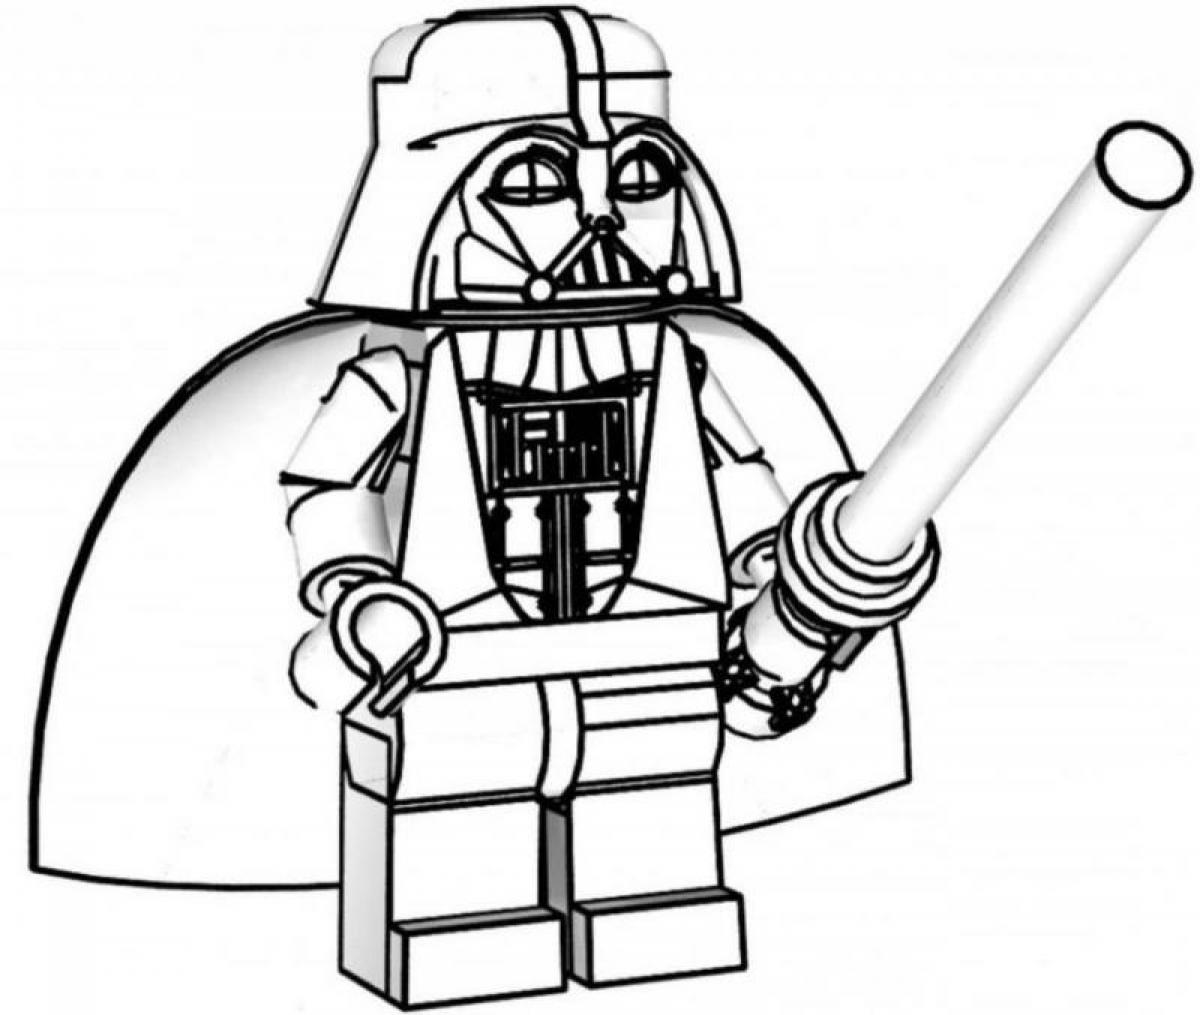 star wars coloring pages darth vader darth vader coloring pages to download and print for free pages vader star coloring darth wars